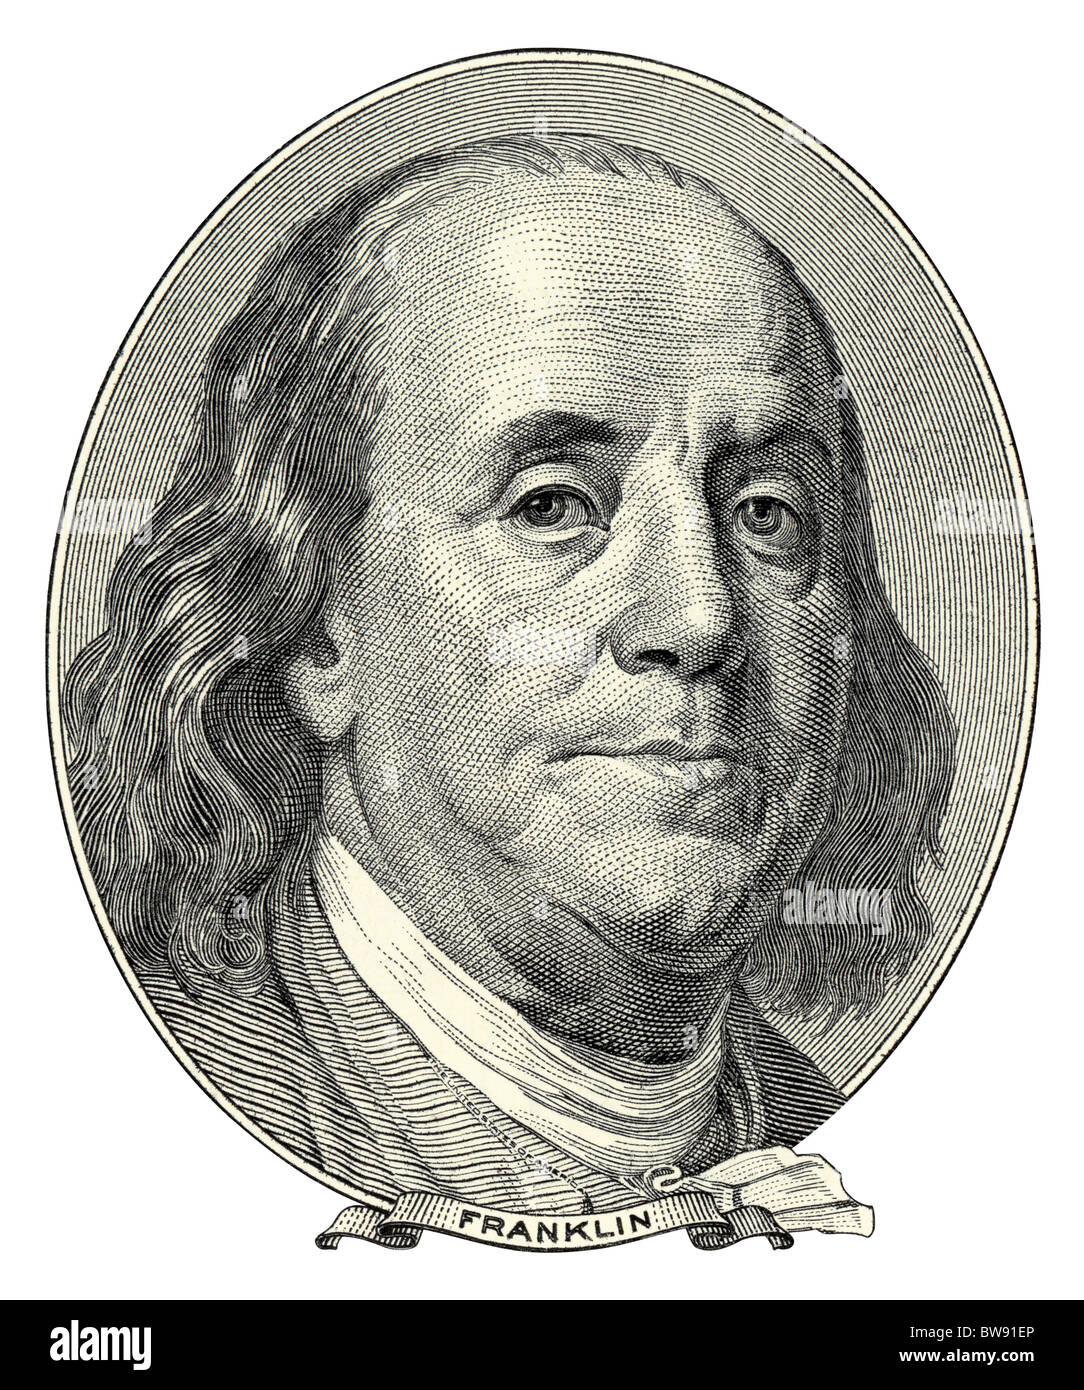 Portrait of Benjamin Franklin as he looks on one hundred dollar bill obverse. NATIVE SIZE NOT UPSCALE. - Stock Image